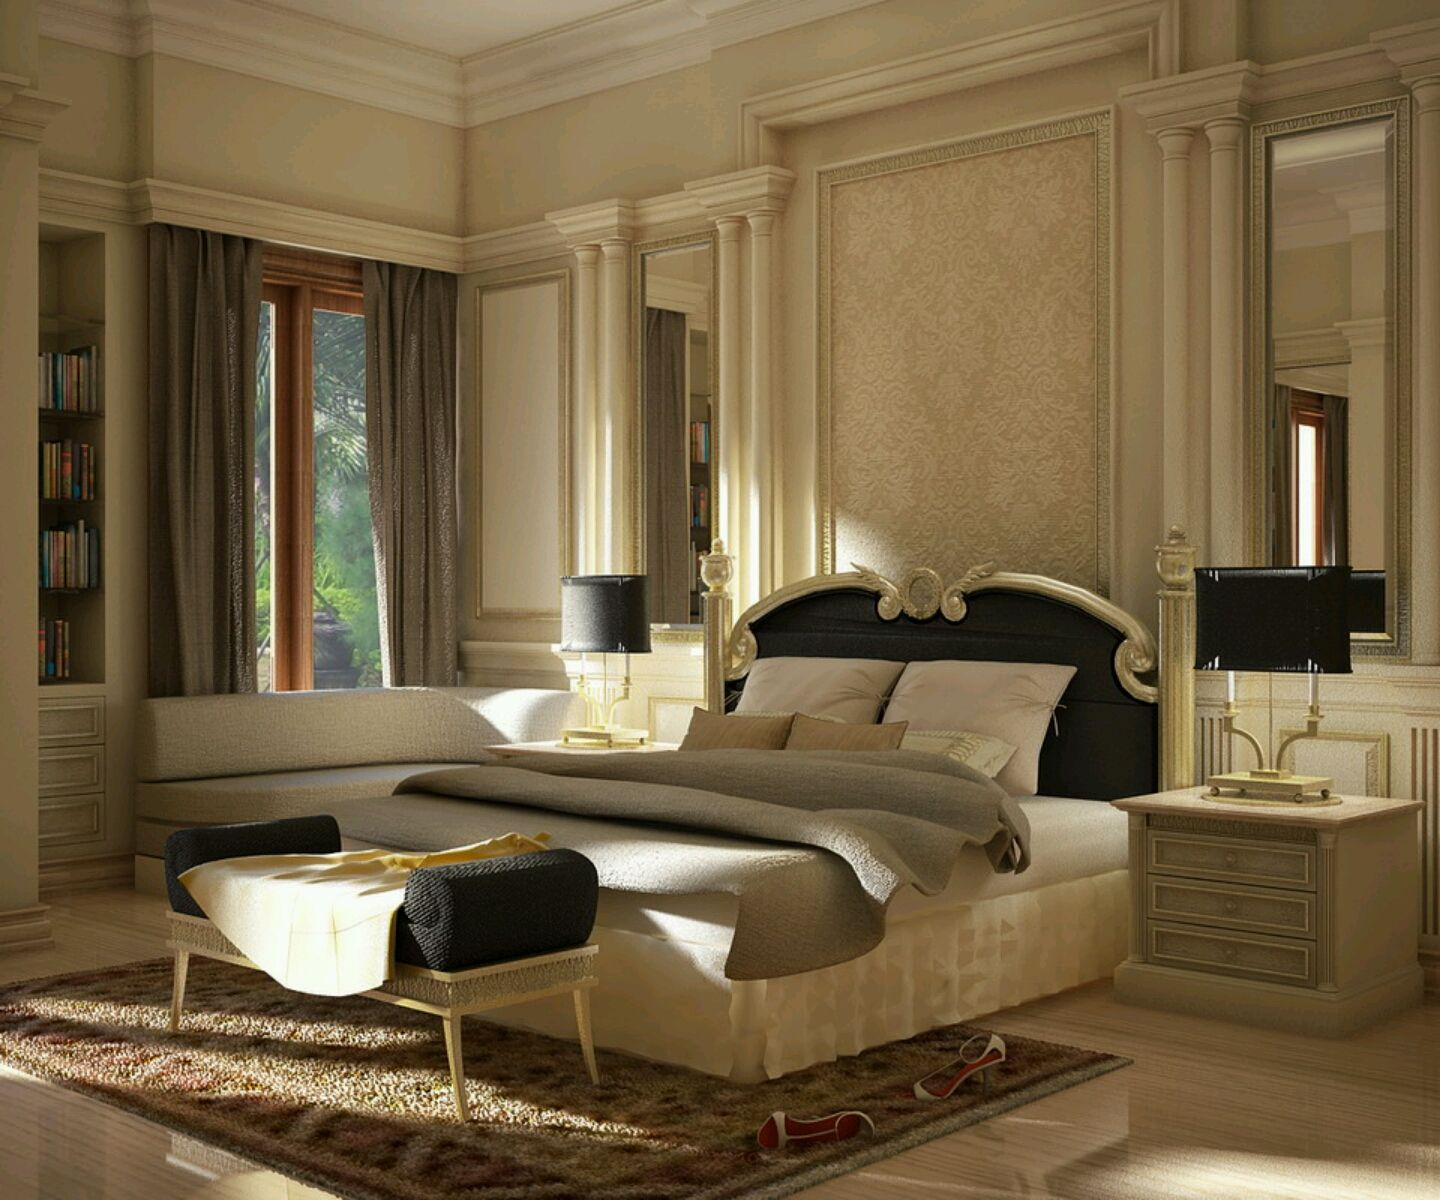 luxary bedroom | modern luxury bedroom furniture designs ideas ...